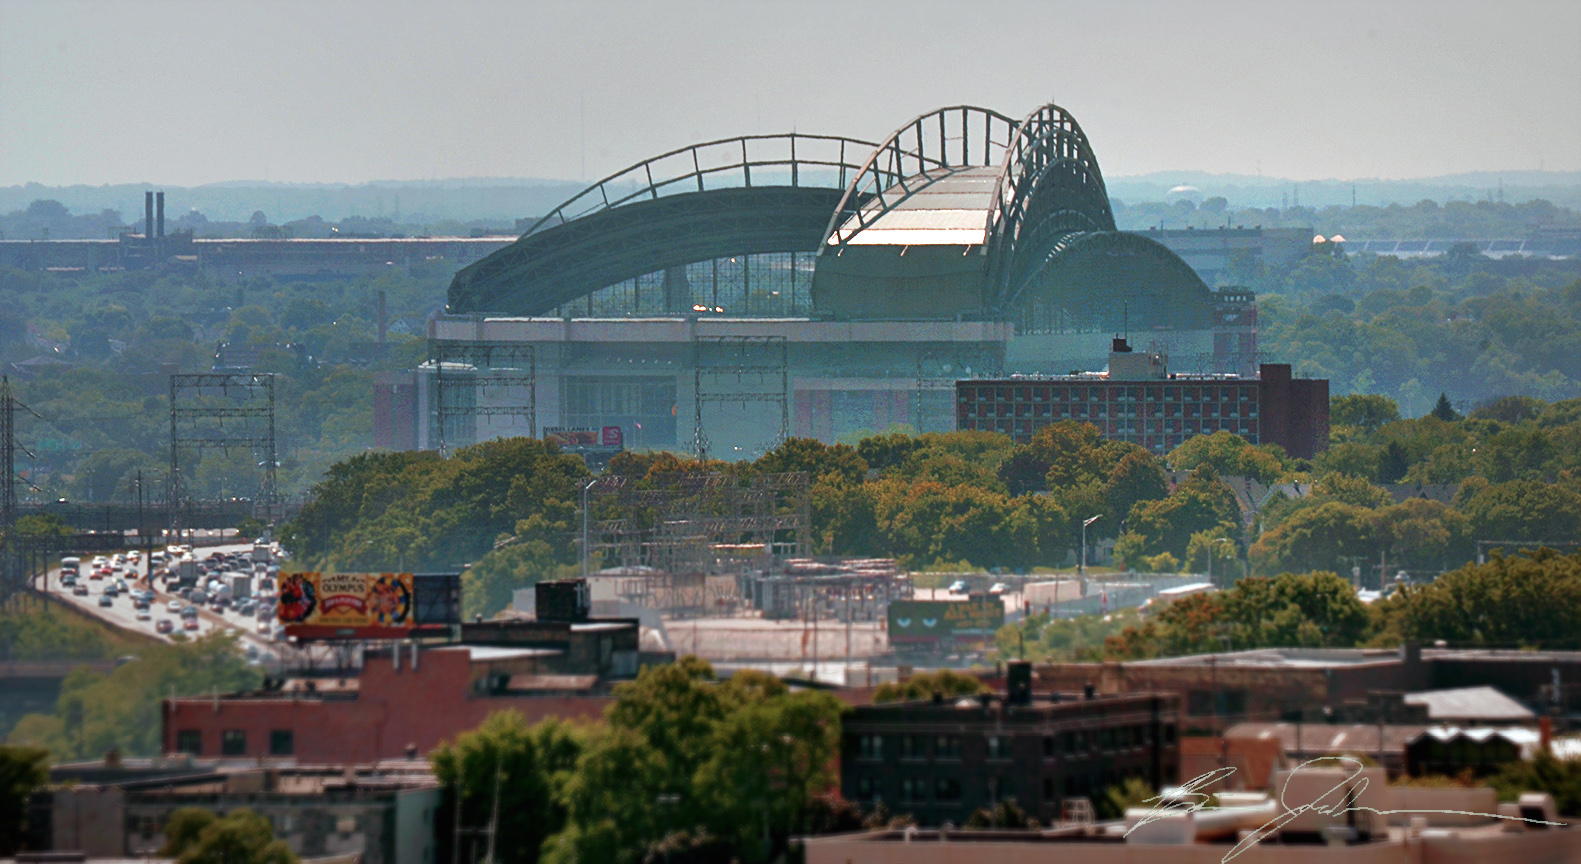 A view of Miller Park from Catholic Financial Life Building.